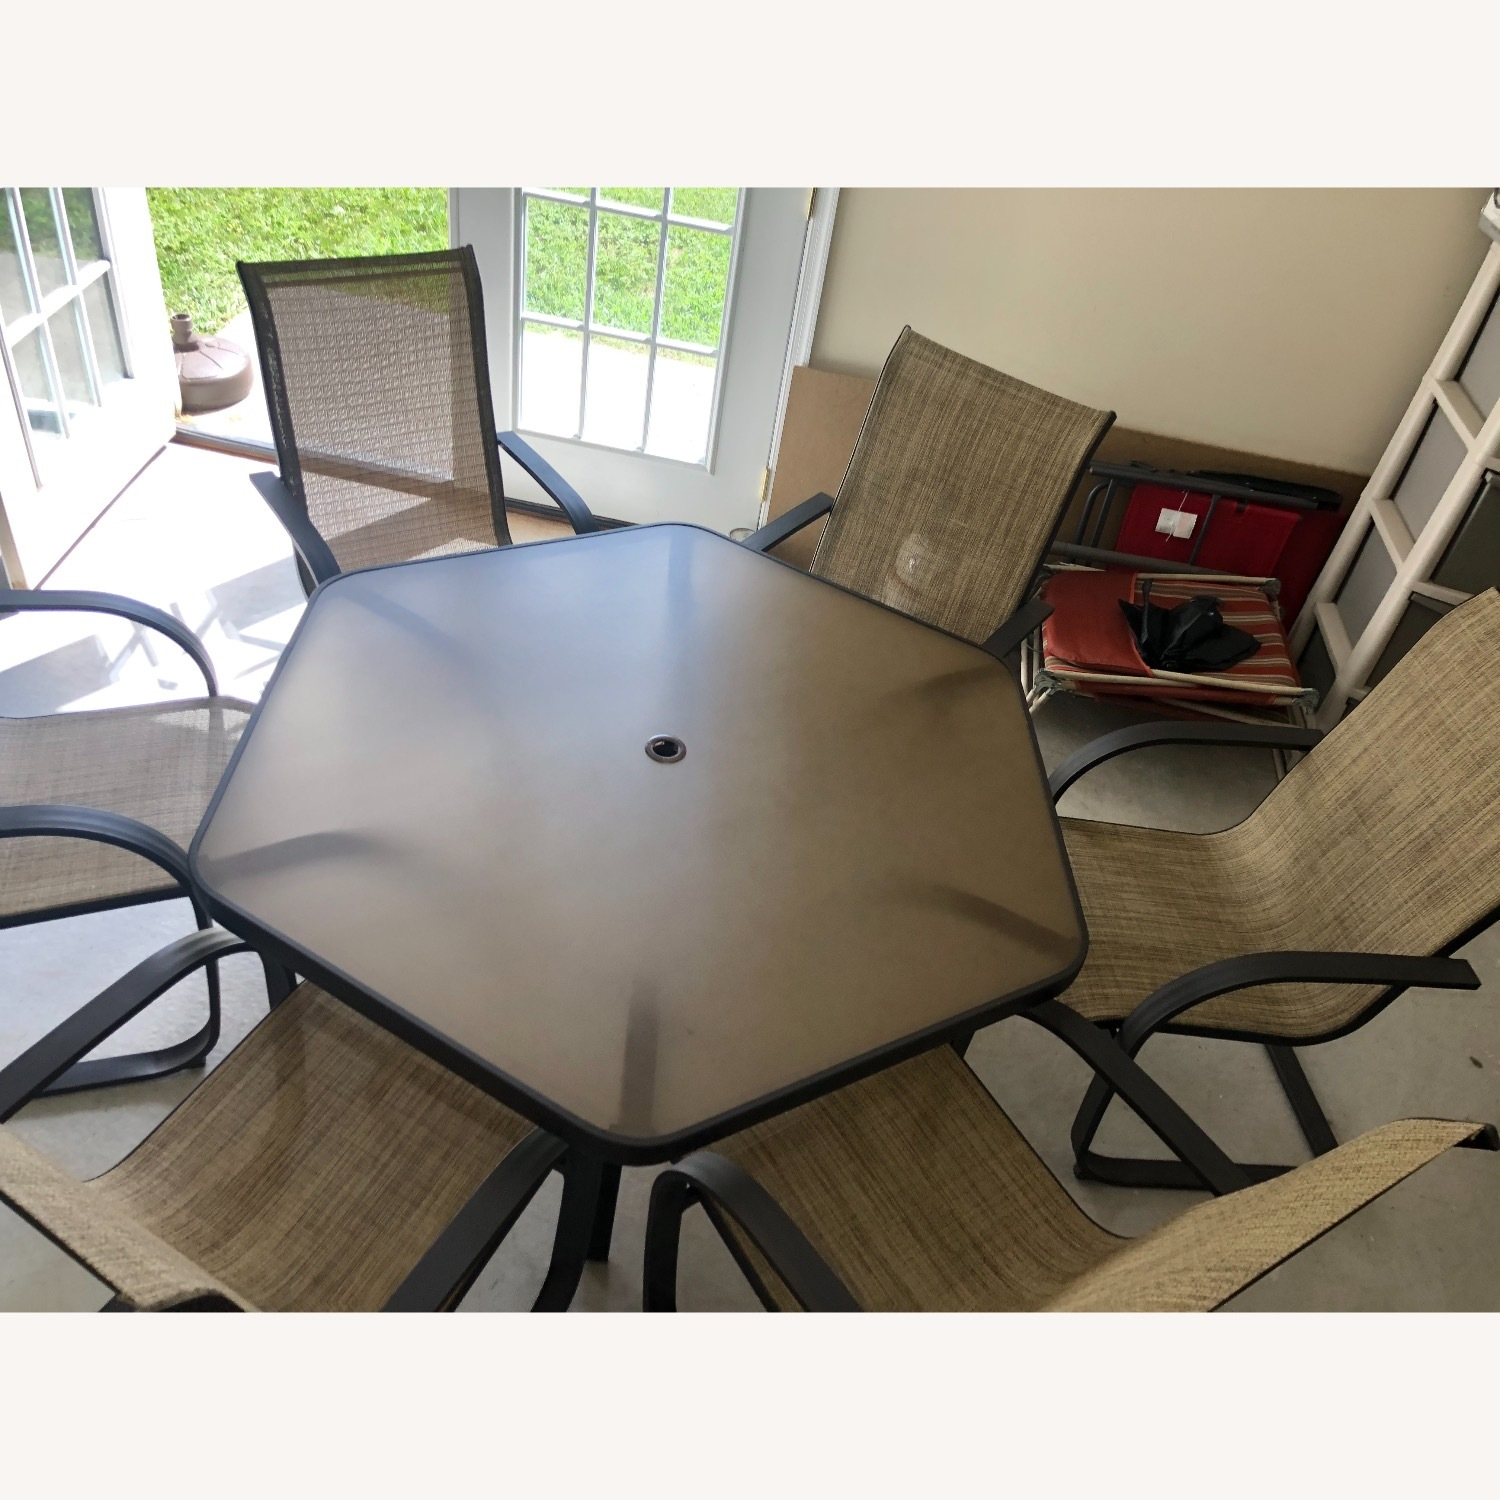 Outdoor Patio Set - 6 Chairs and Umbrella w/Base - image-1